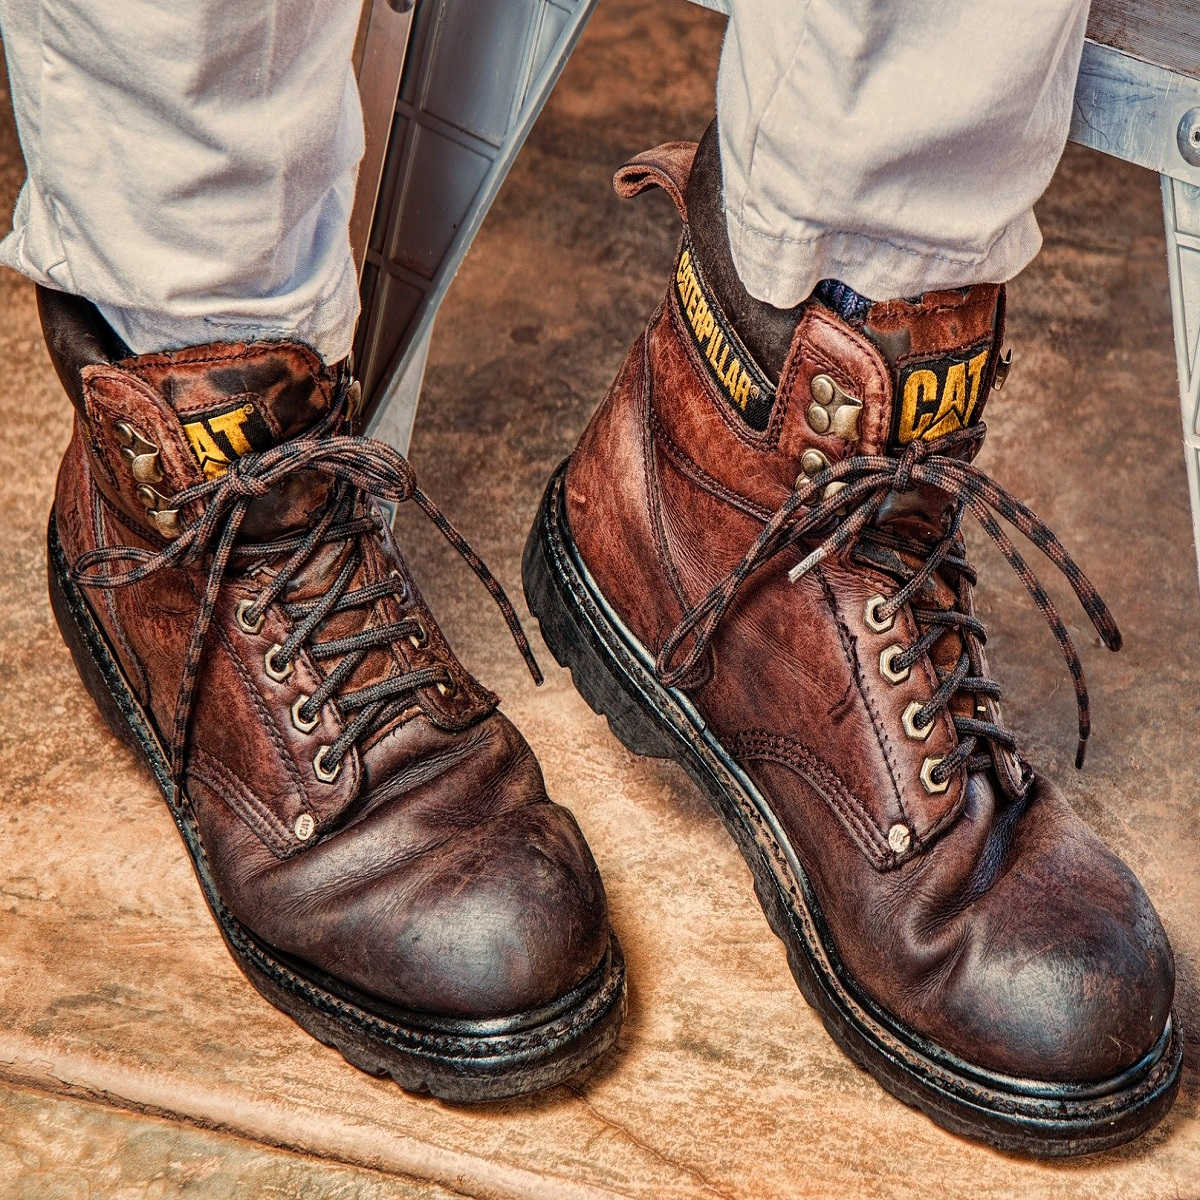 Can You Waterproof Shoes and Boots with WD40?